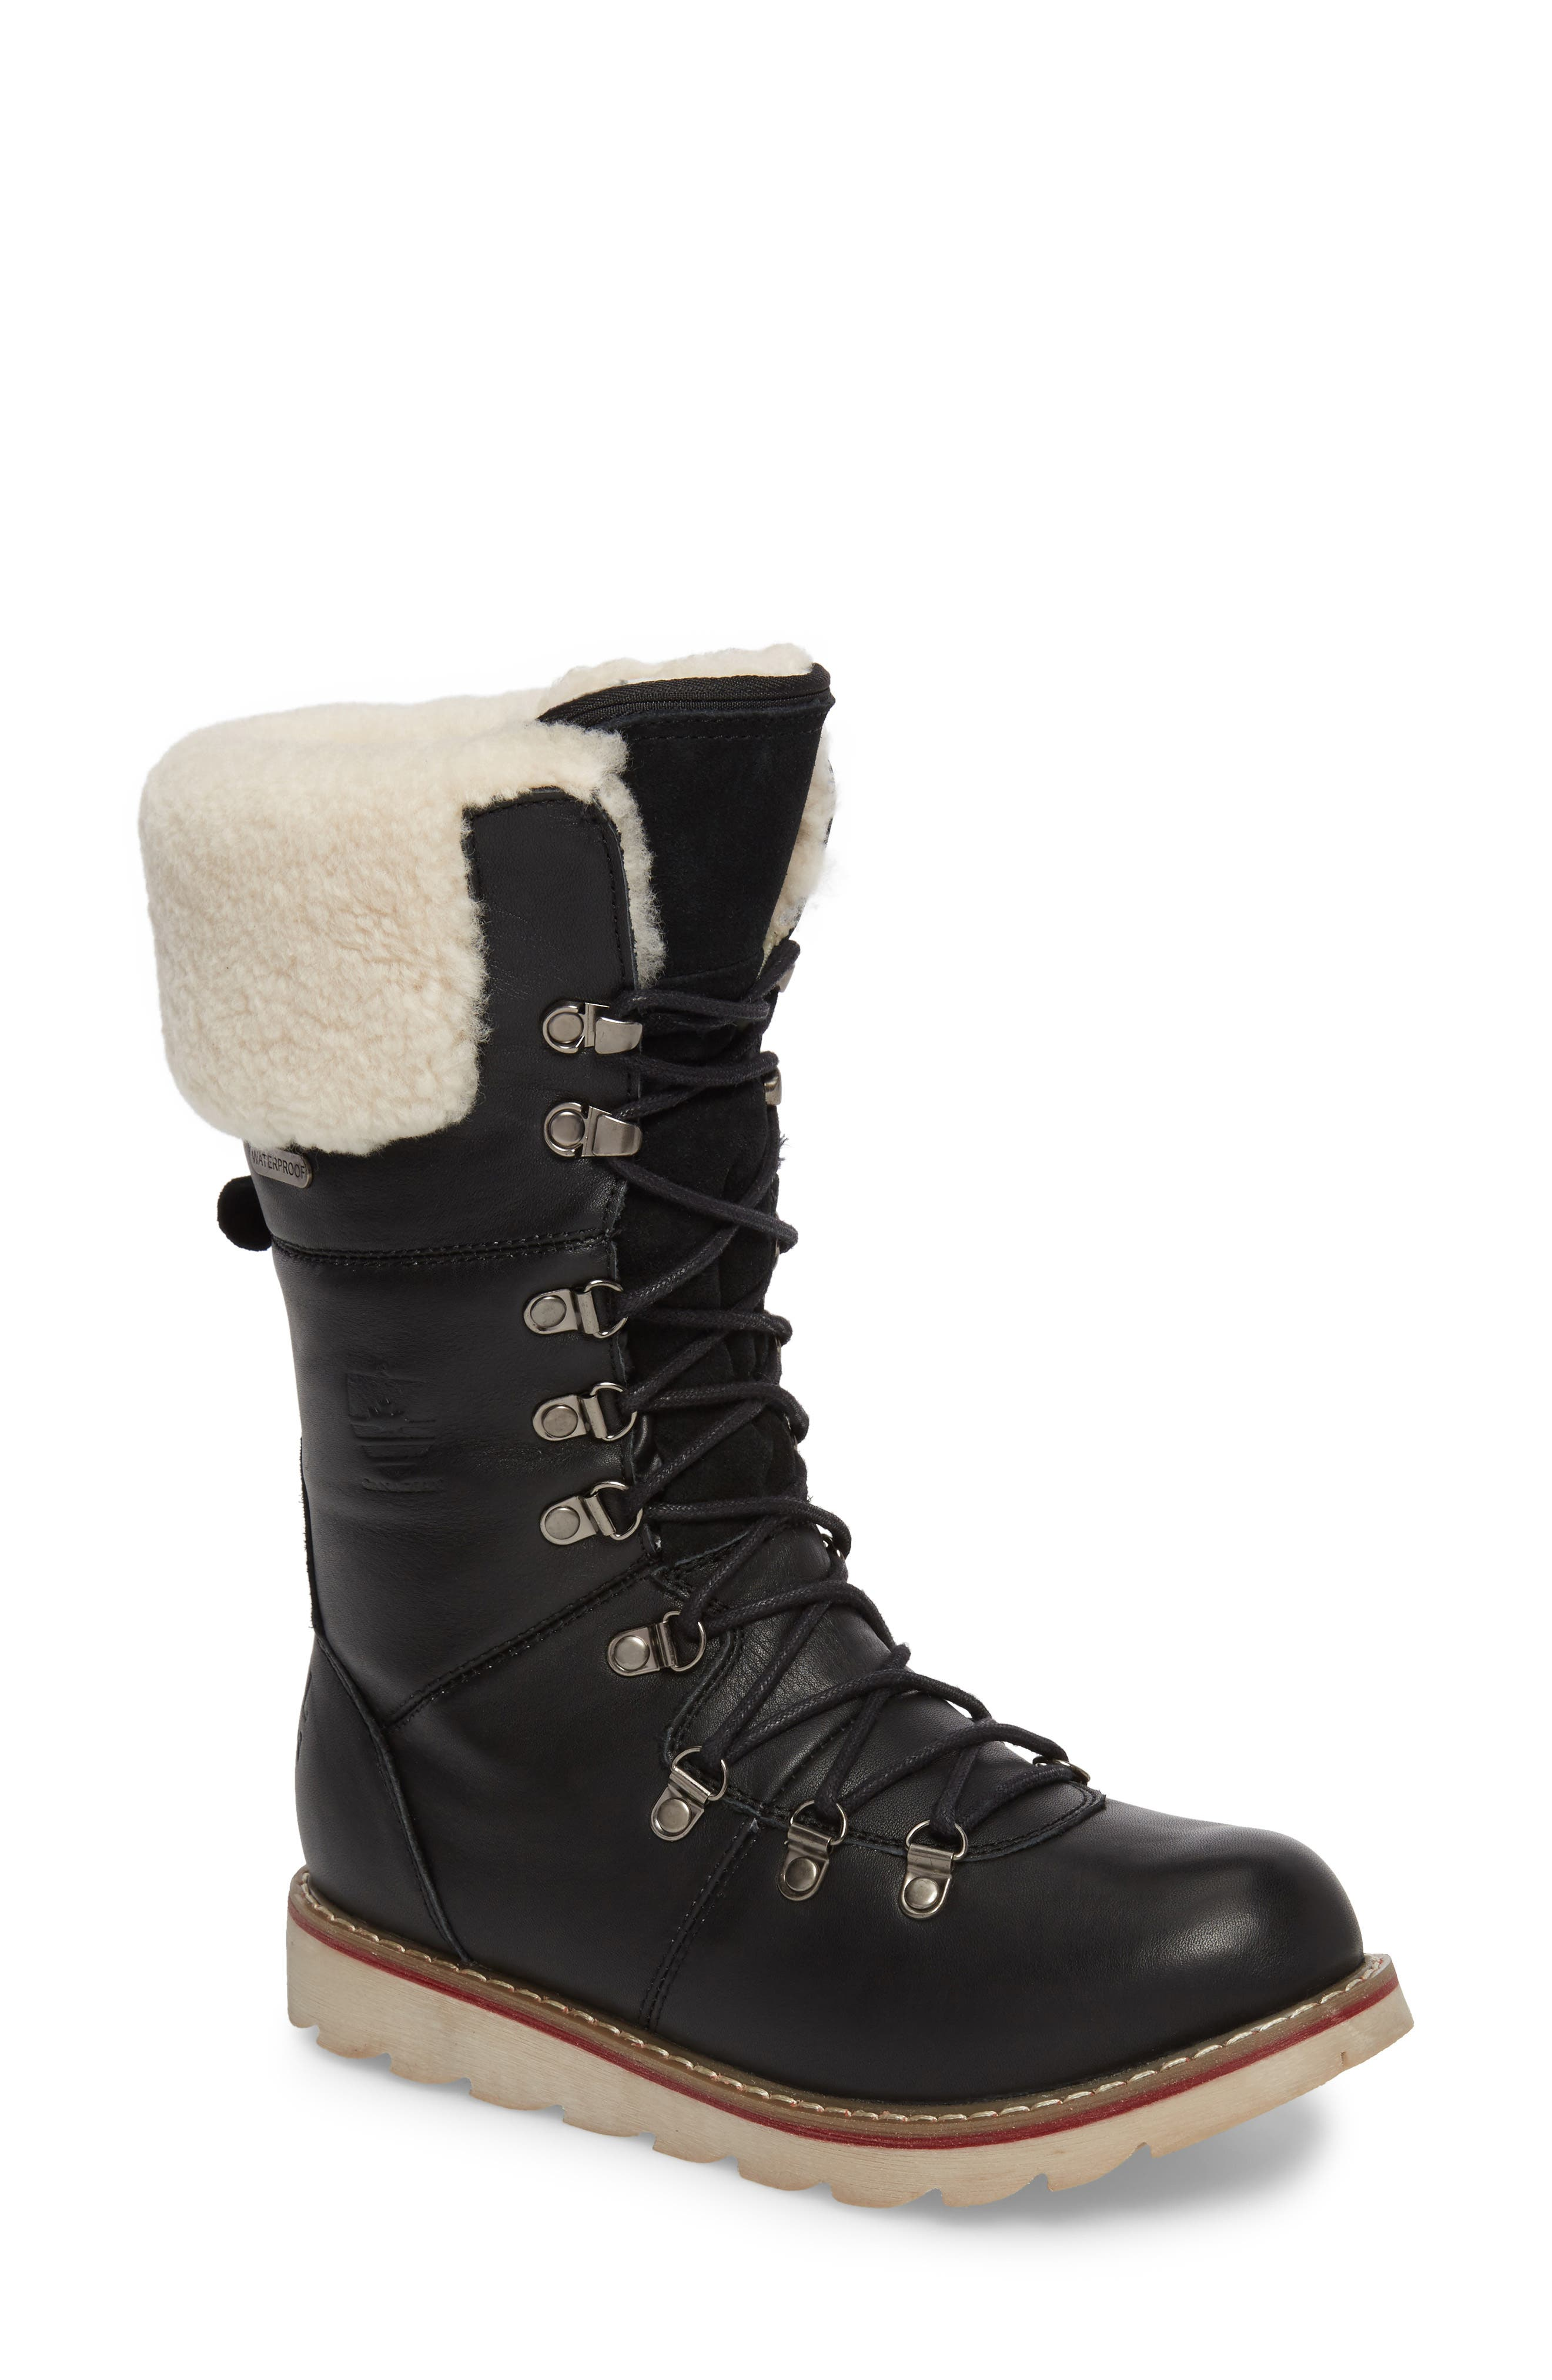 Louise Waterproof Snow Boot with Genuine Shearling Cuff,                             Main thumbnail 1, color,                             001